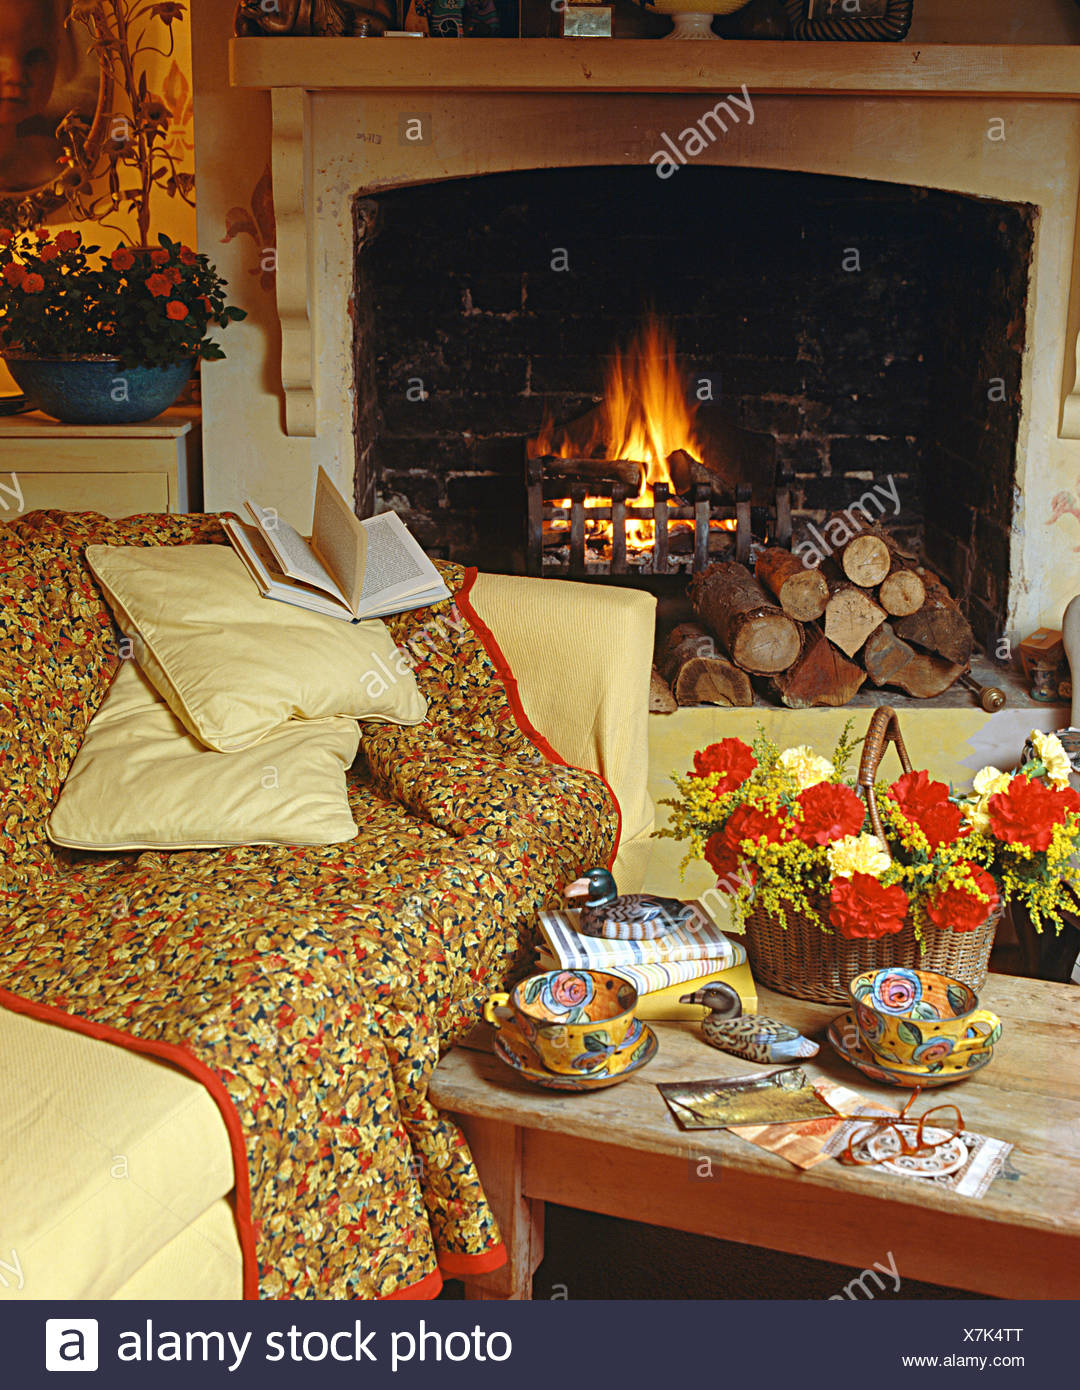 Basket Of Flowers On Small Table Beside Fireplace And Sofa With